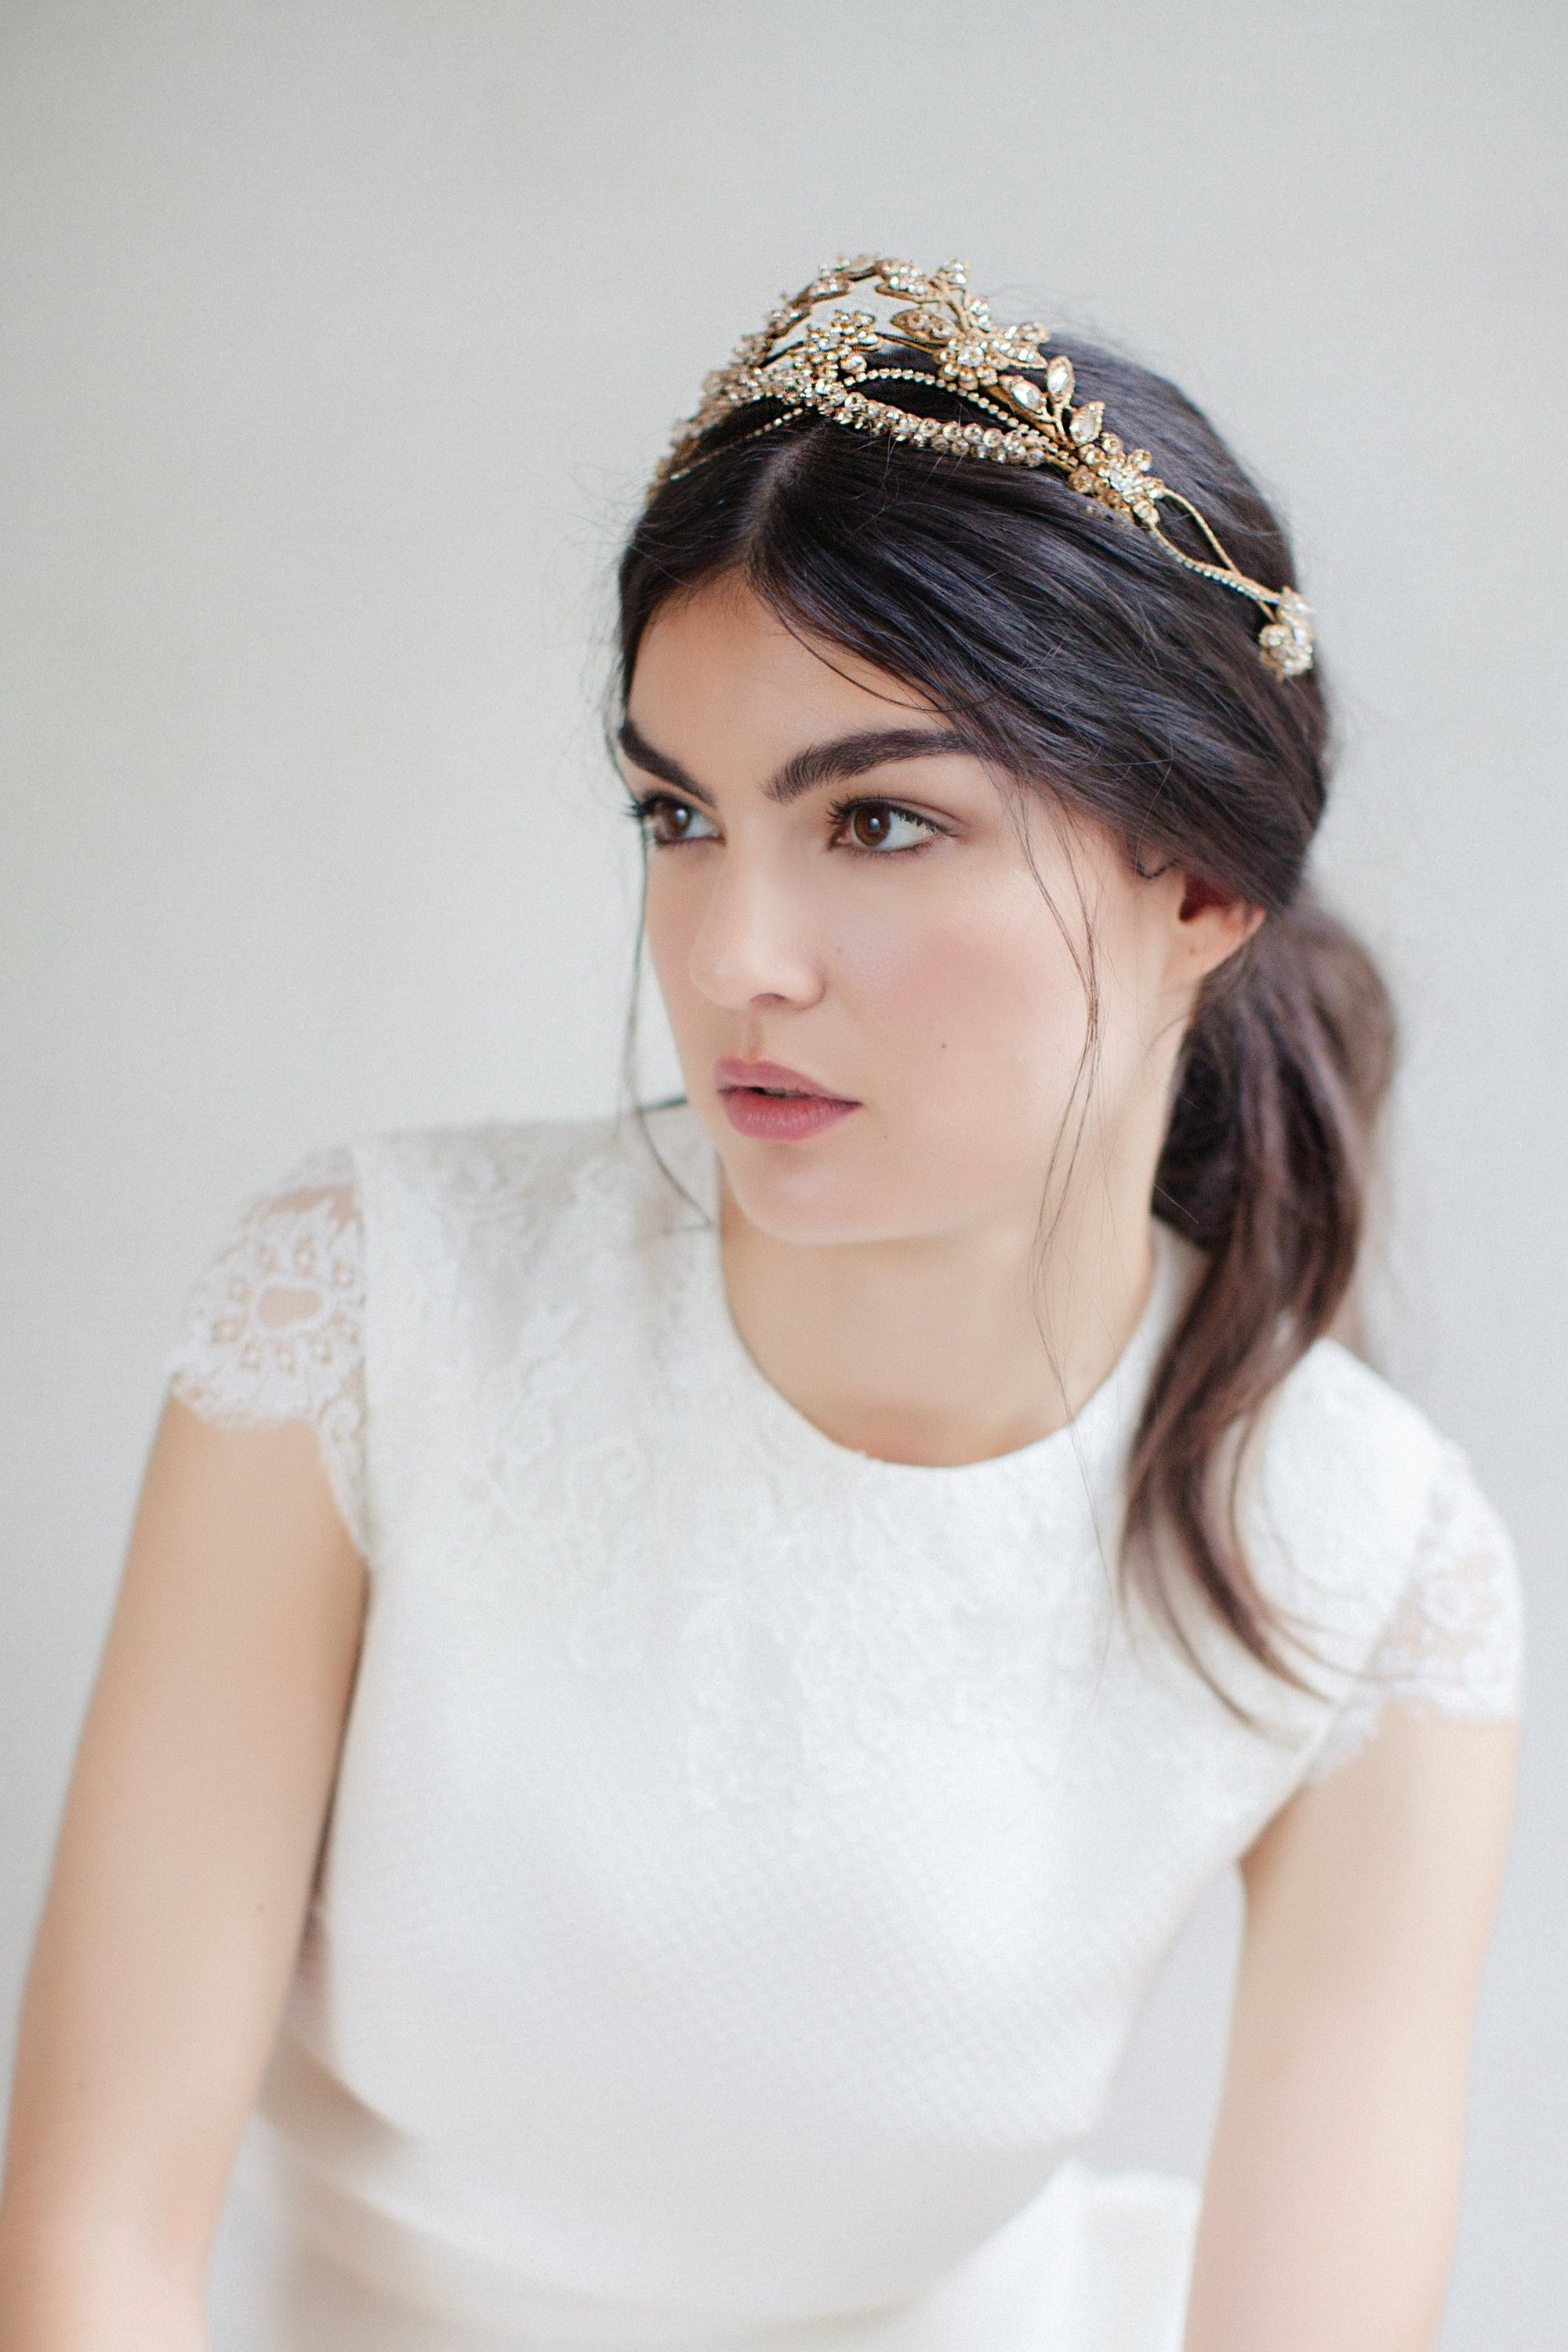 18 Spectacular Statement Bridal Headpieces for 2017 | Headpieces ...